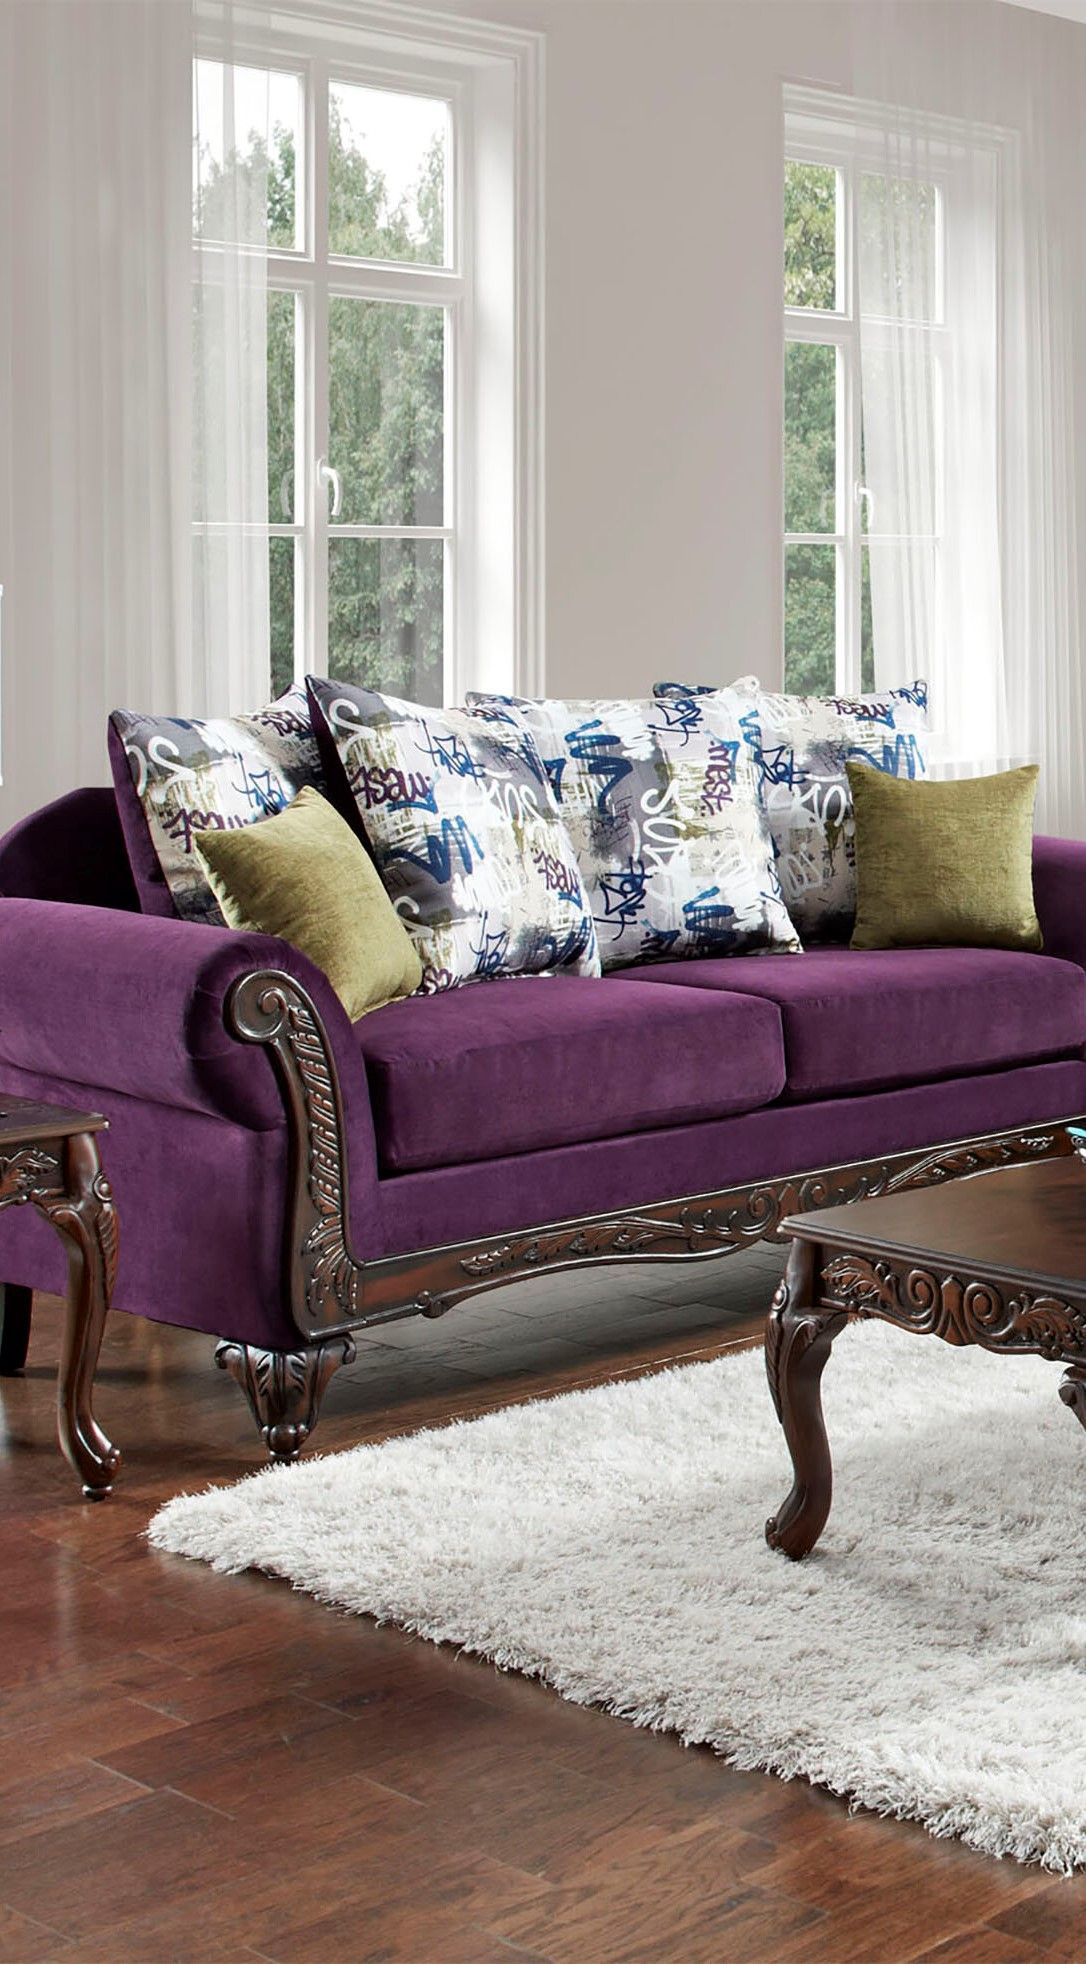 The Best Living Room Color Schemes Dark Green Purple Di 2020